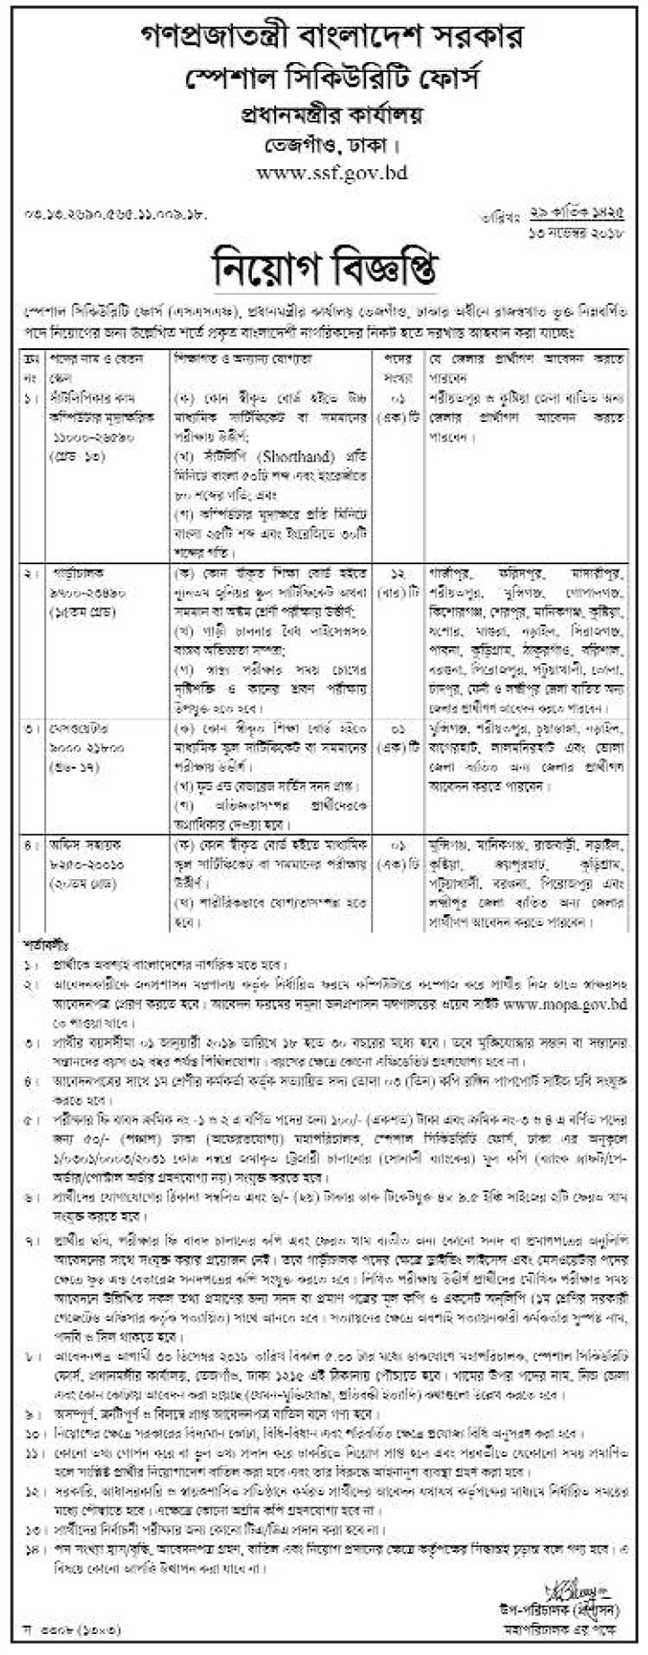 Prime Minister Office PMO job circular